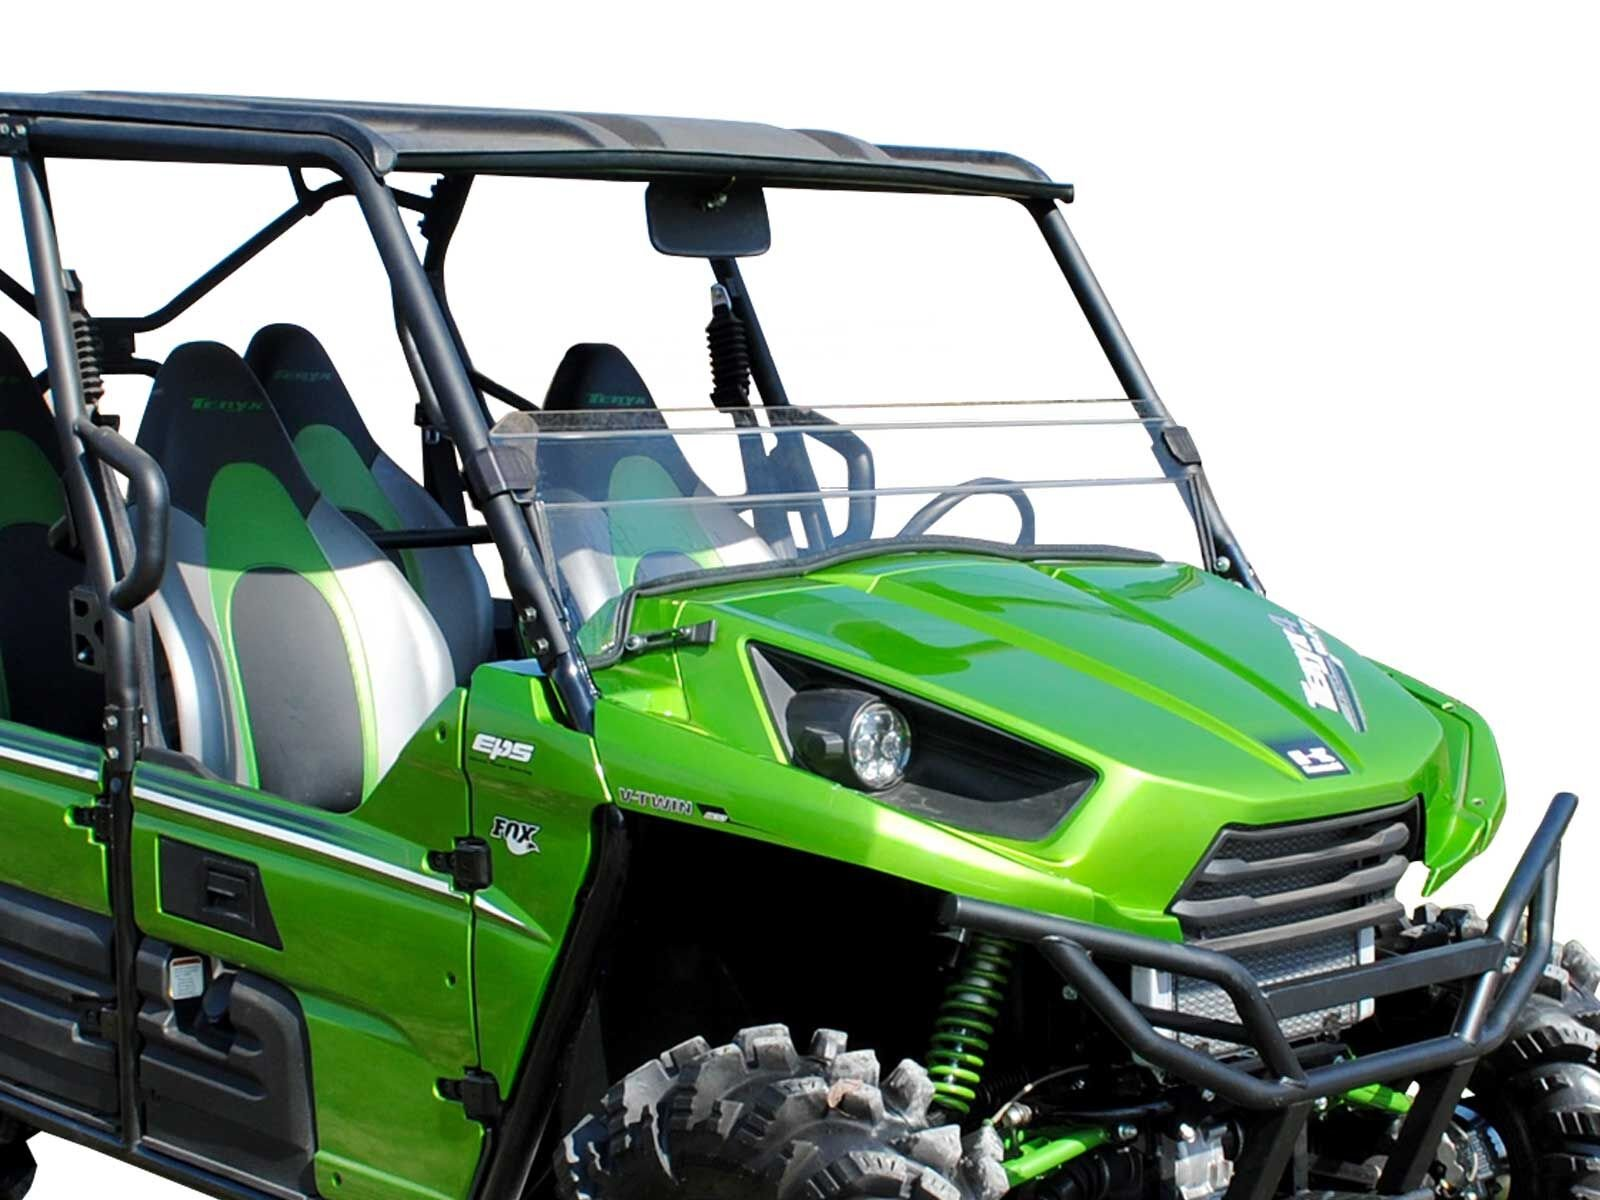 SuperATV Heavy Duty Clear Scratch Resistant Half Windshield for Kawasaki Teryx 800/800 4 (2016+) - Installs in 5 Minutes!